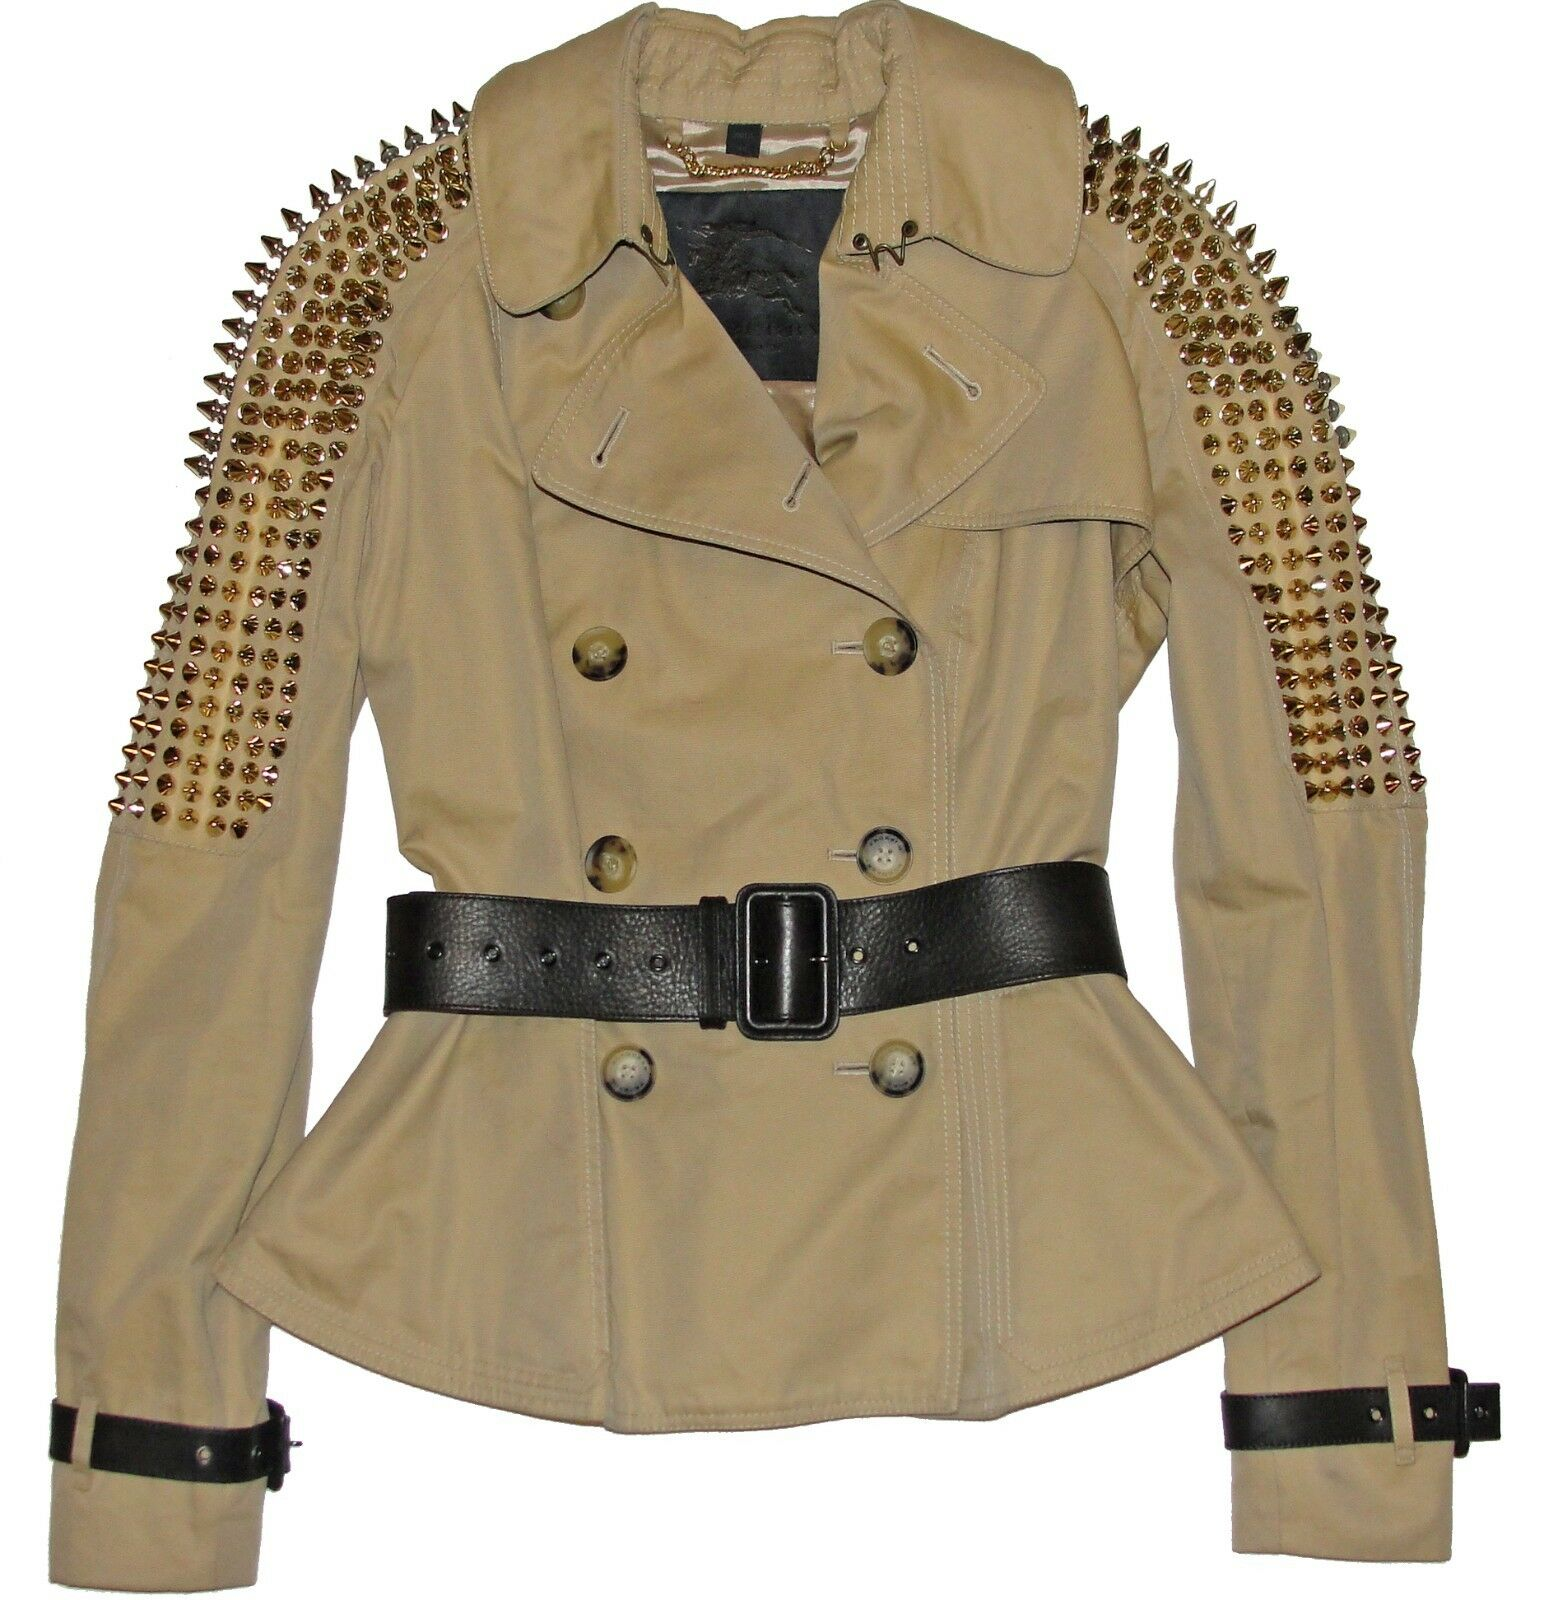 Burberry Prorsum Gold Studded Beige Gabardine Peplum Jacket w/ Leather Belt IT40